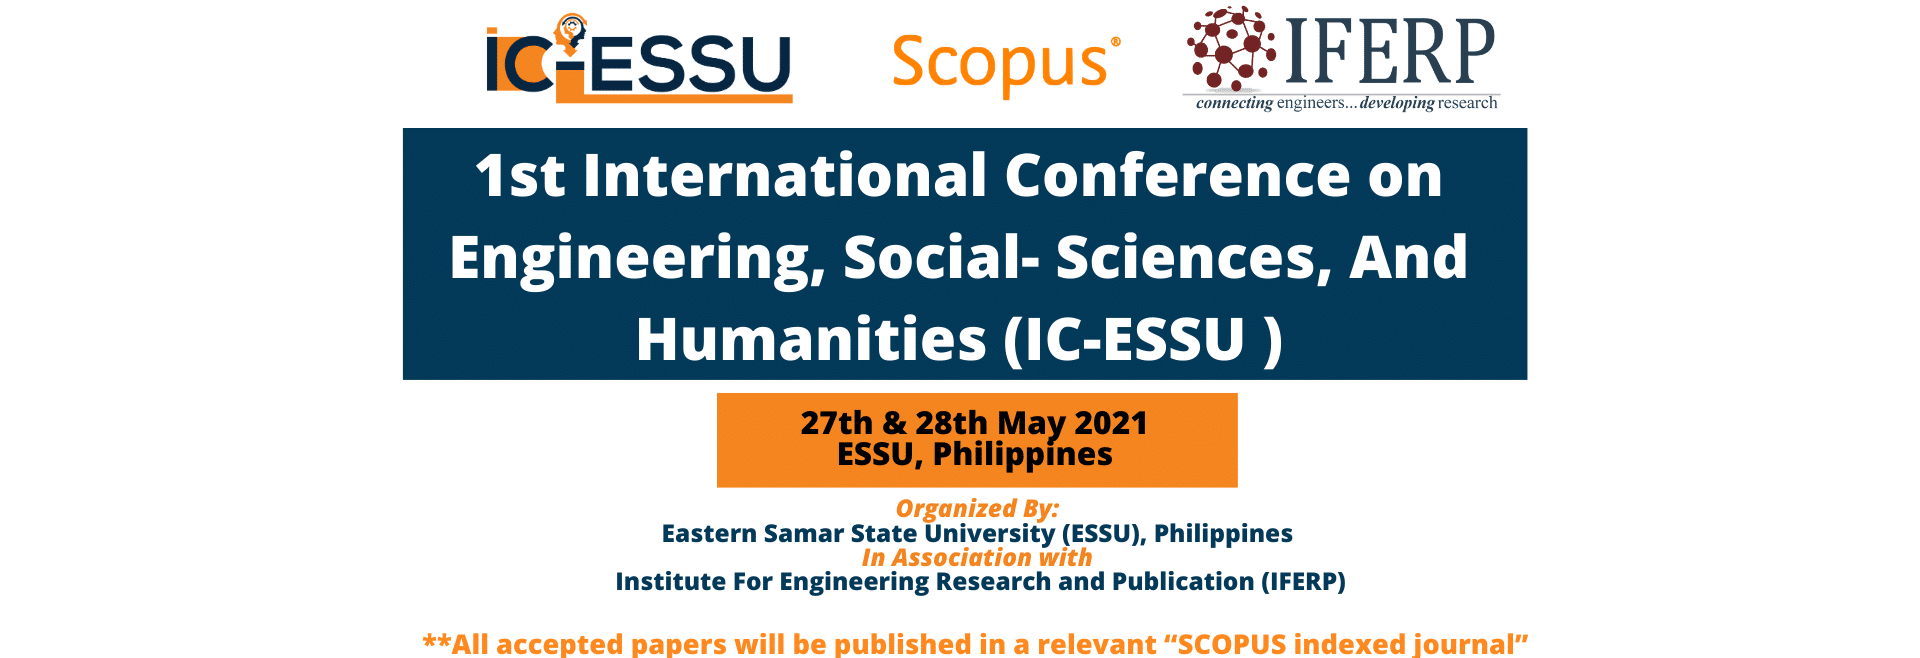 1st International Conference on Engineering, Social- Sciences, And Humanities (IC-ESSU)